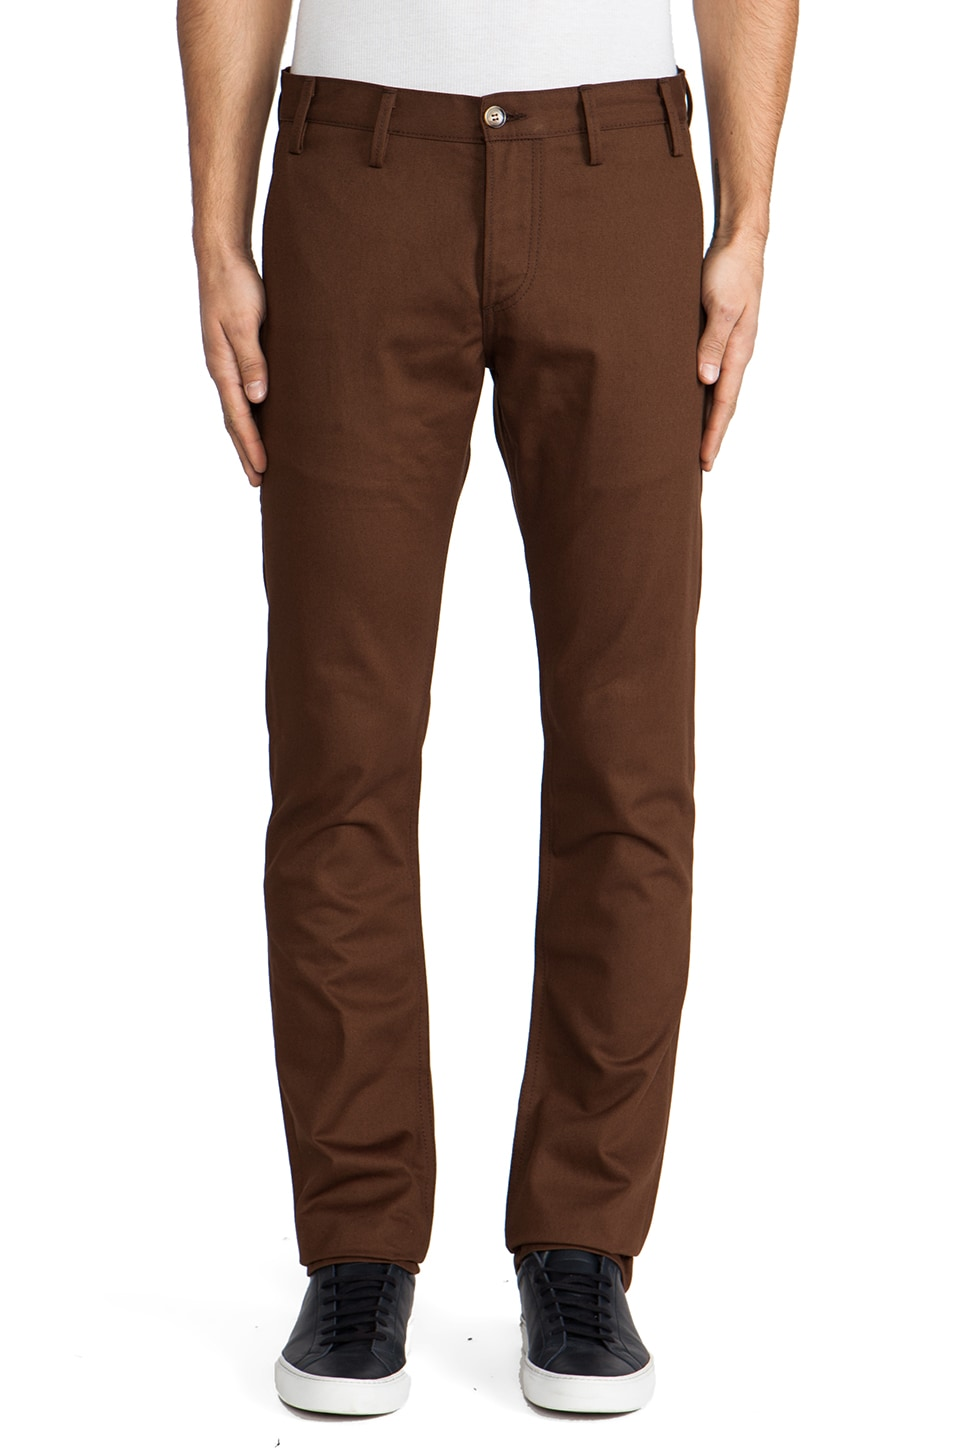 Rogue Territory Officer Trouser 8oz Twill in Nutmeg